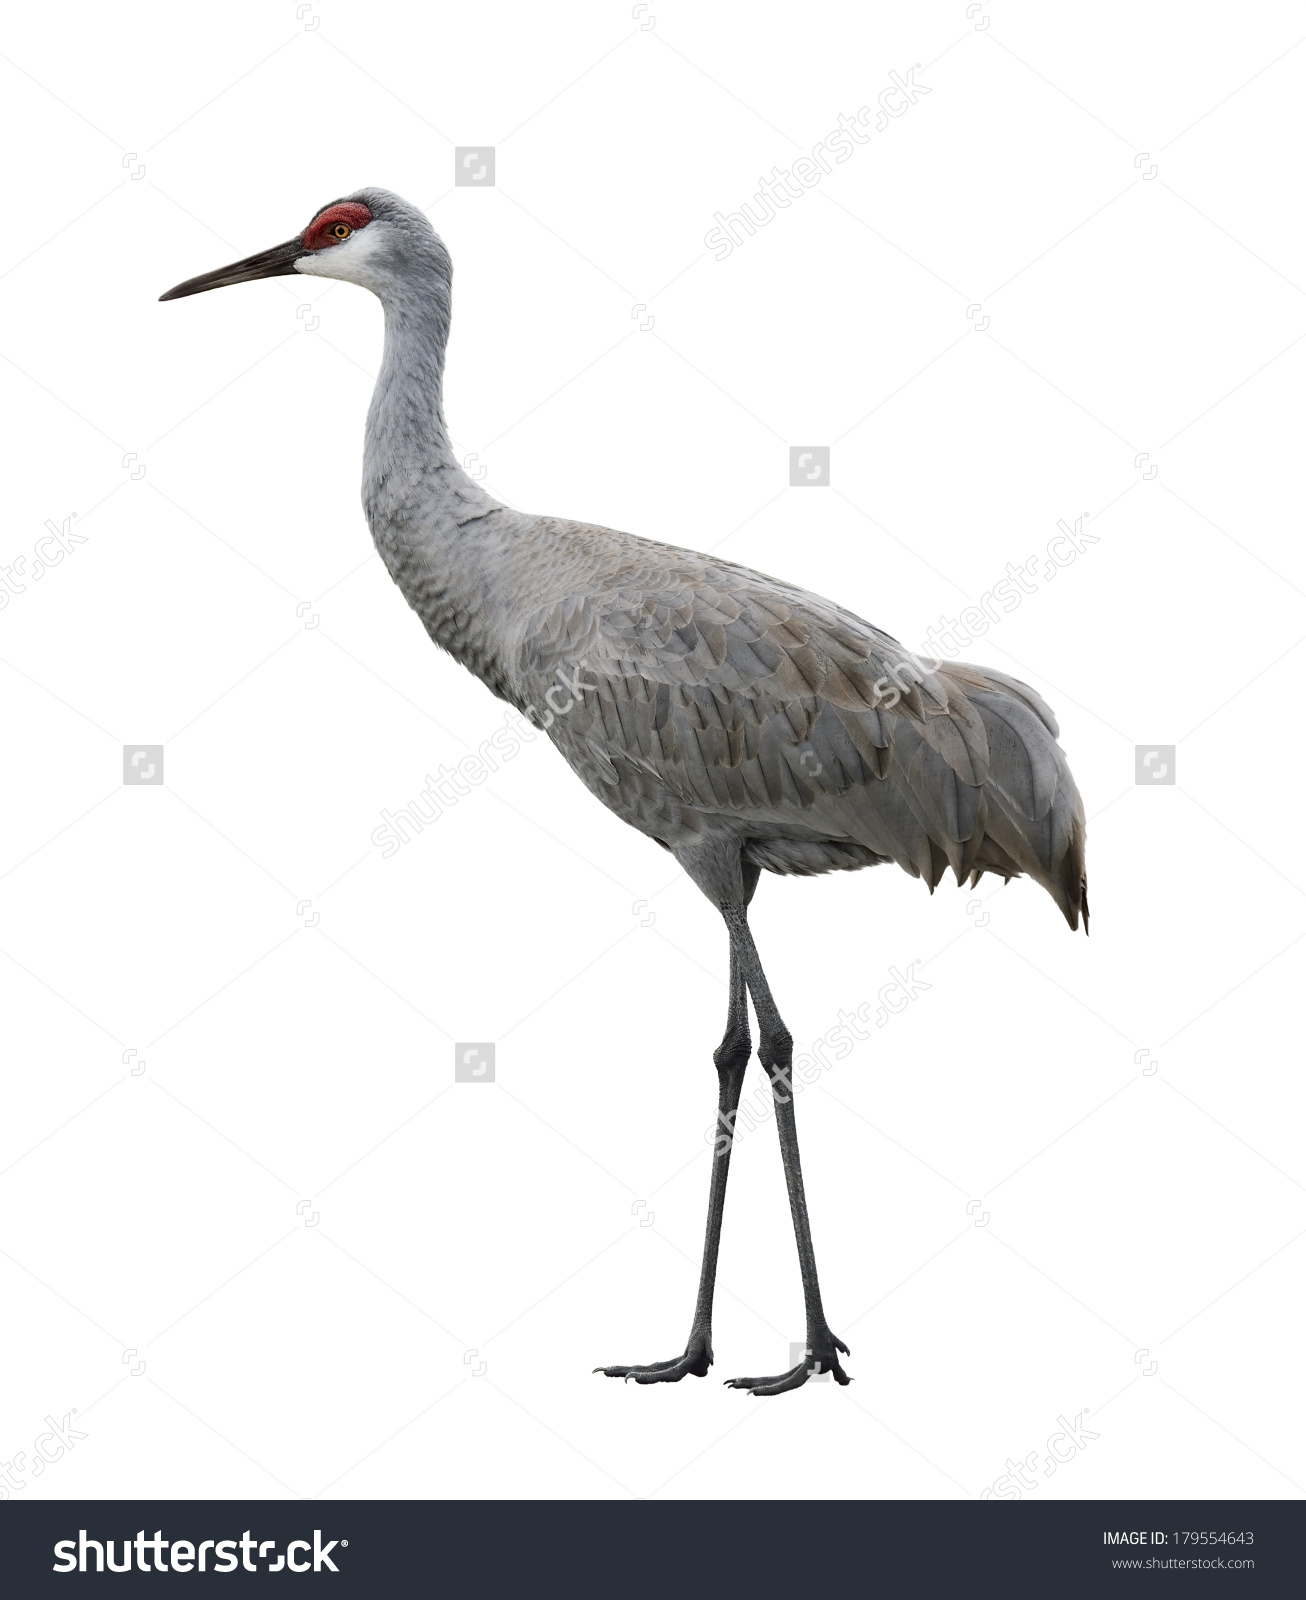 Sandhill Crane clipart #10, Download drawings